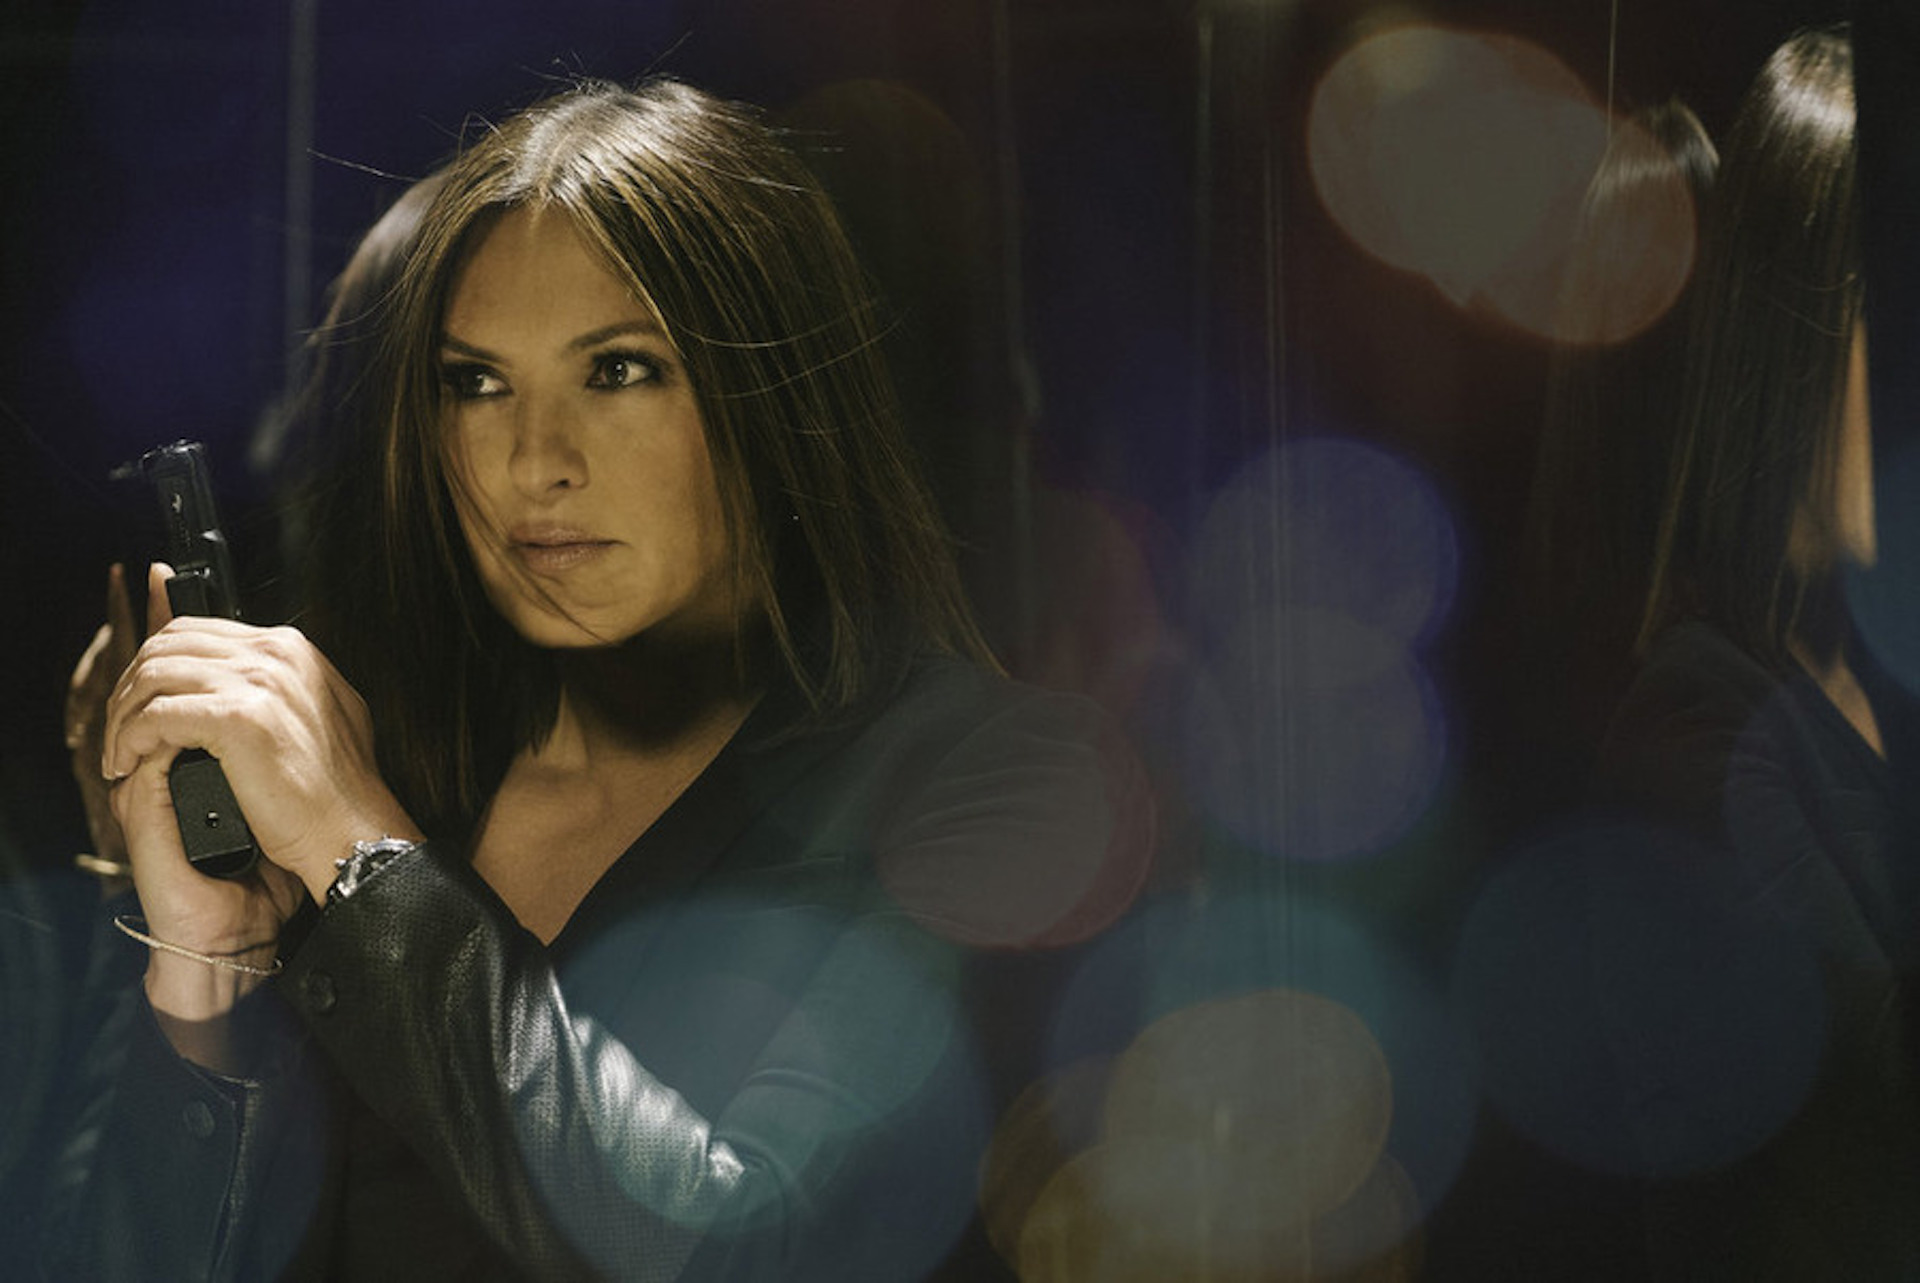 Mariska fighting crime